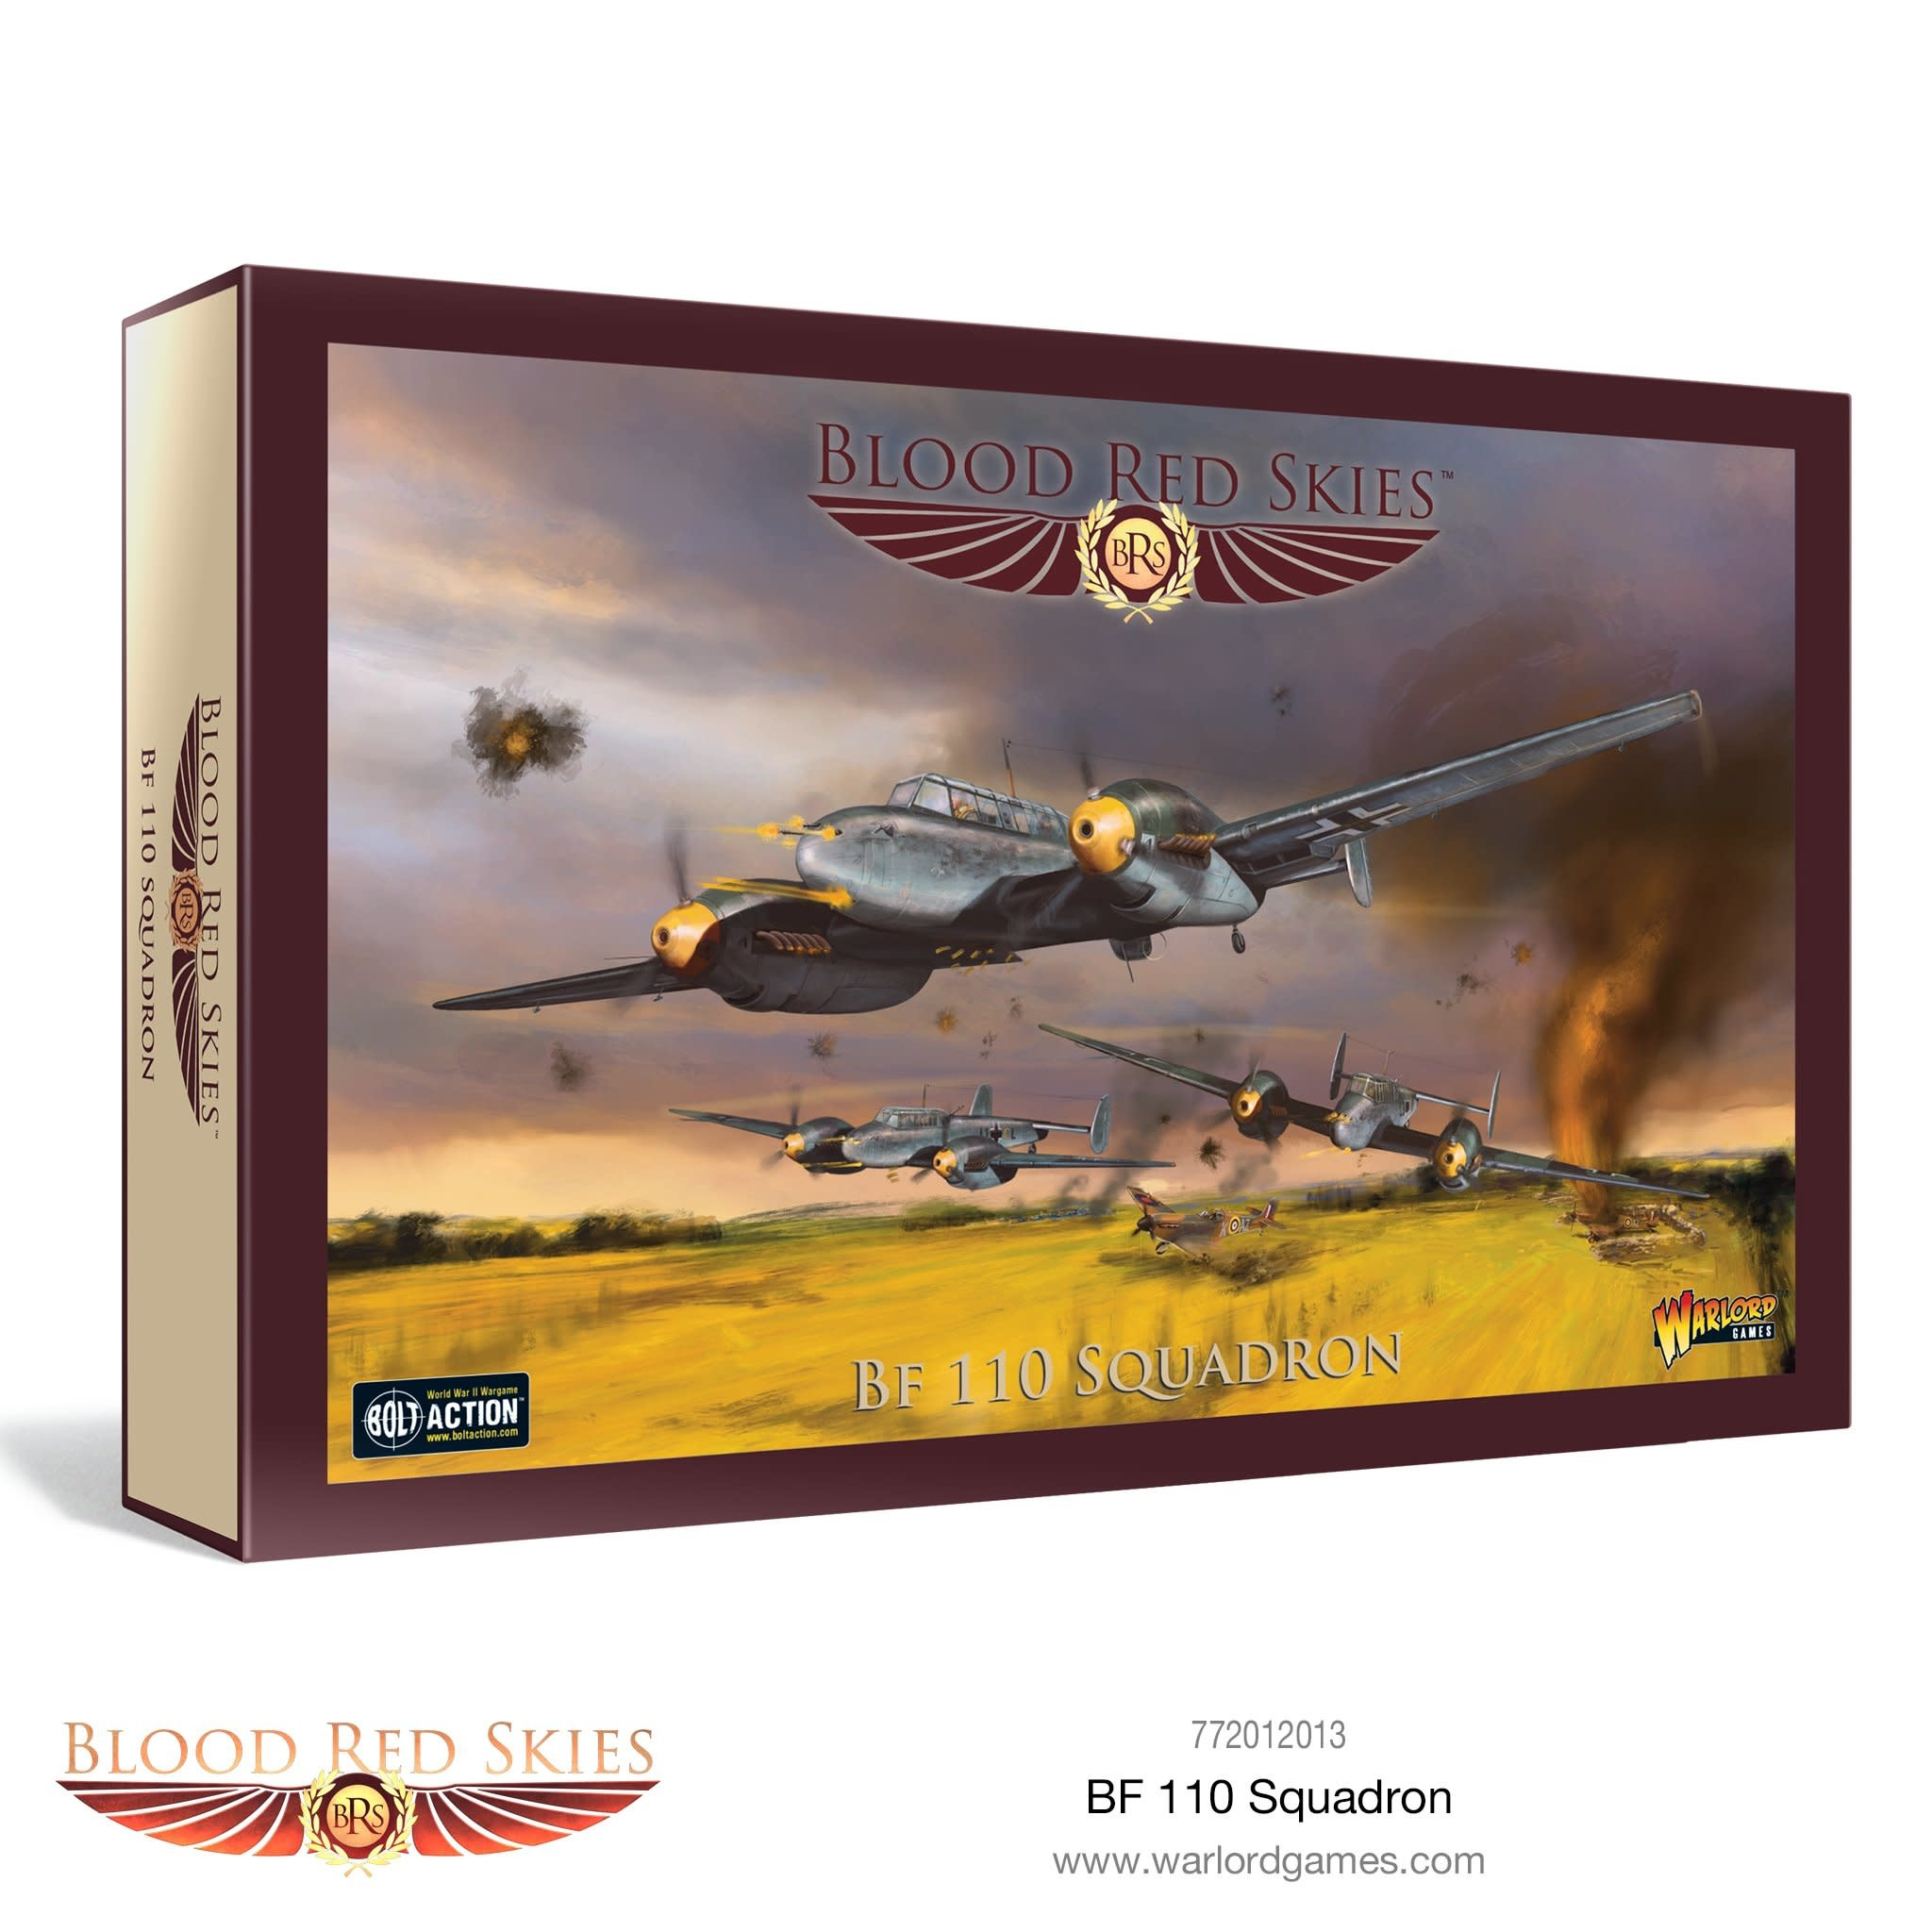 Warlord games Blood Red Skies: Bf 110 Squadron